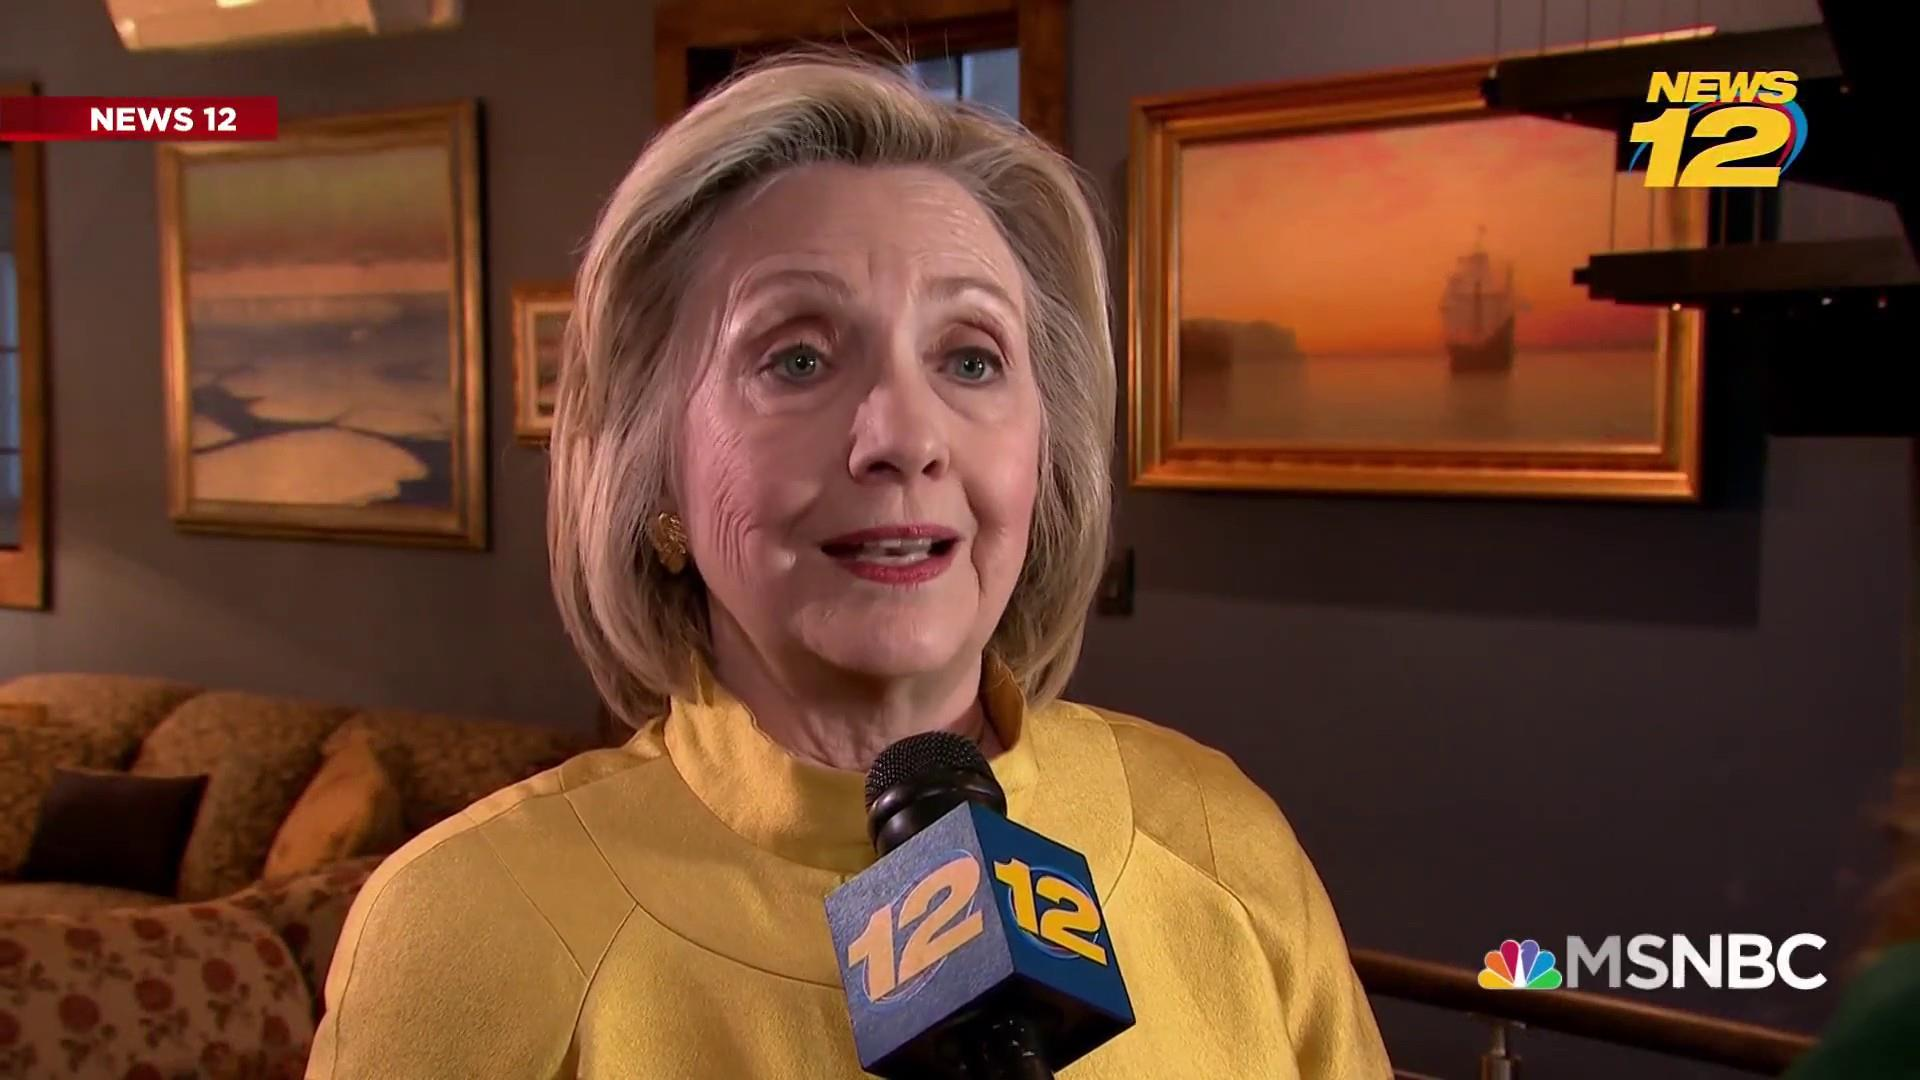 Hillary Clinton on 2020: 'I'm not running' but will 'keep speaking out'